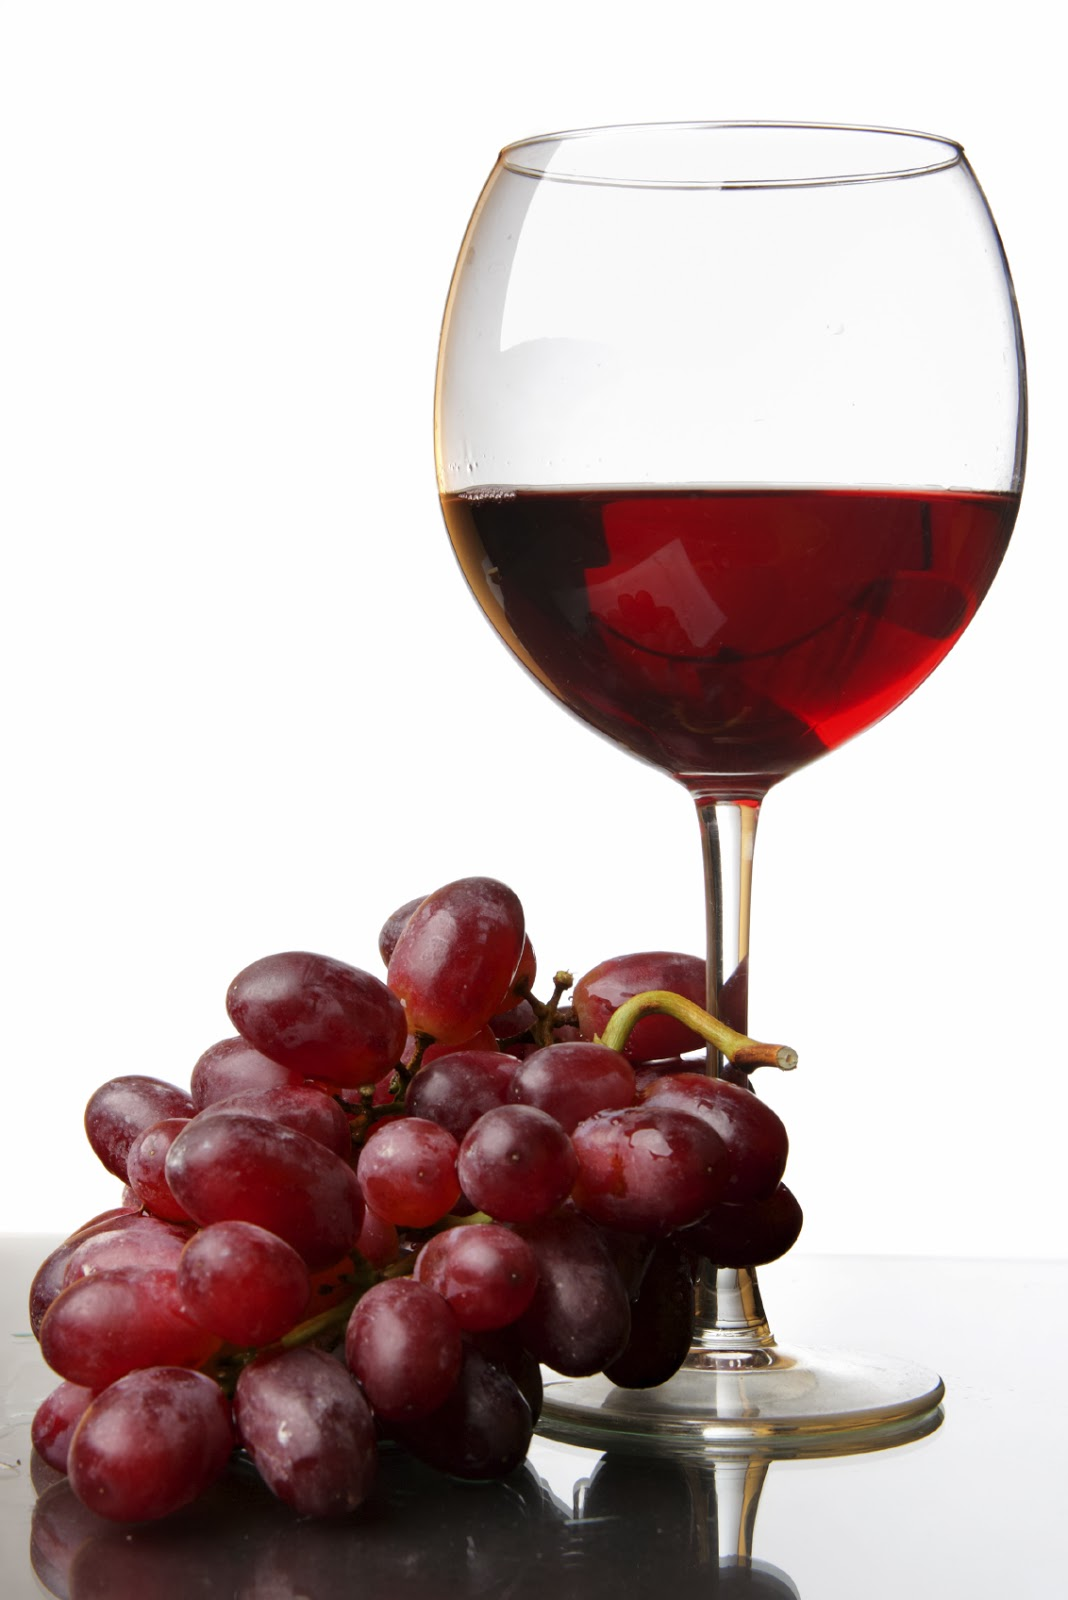 Red Grapes - The Source Of Resveratol